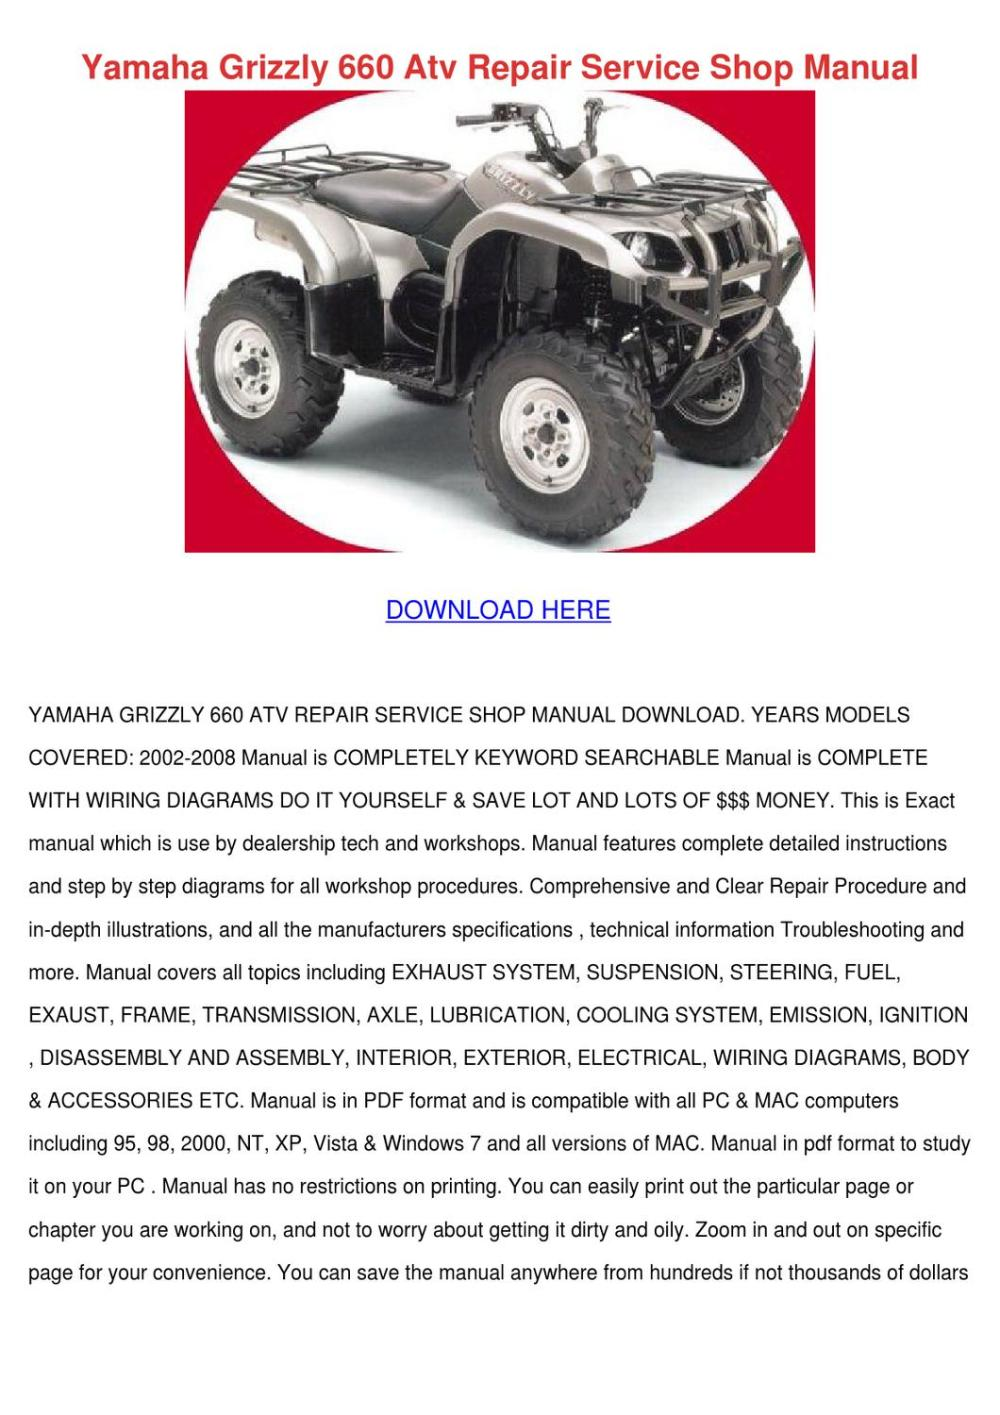 medium resolution of yamaha grizzly 660 atv repair service shop ma by gretchenfelder issuuyamaha grizzly 660 atv repair service